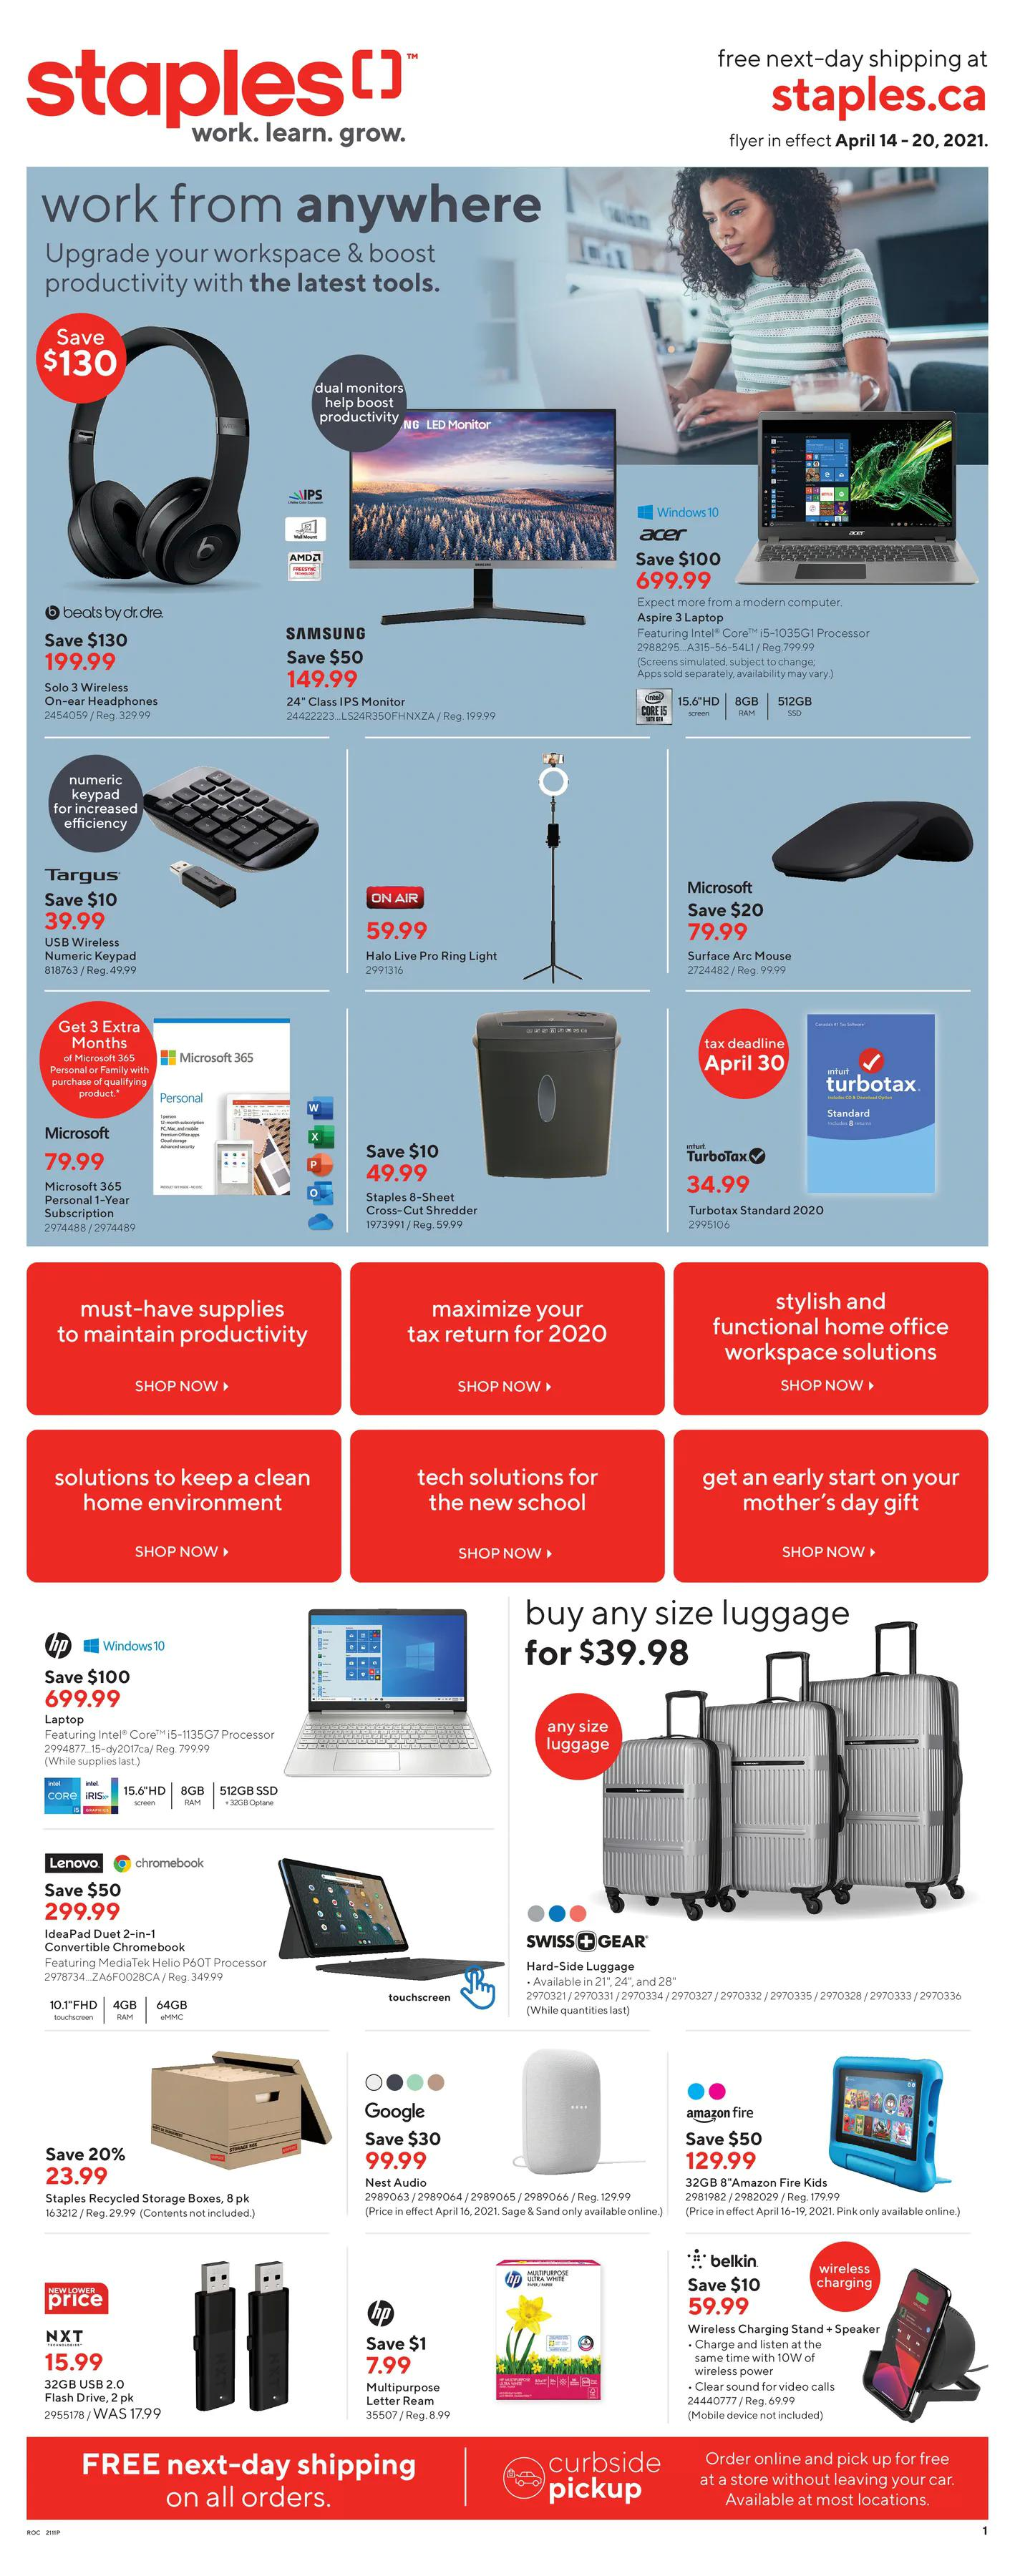 Staples - Weekly Flyer Specials